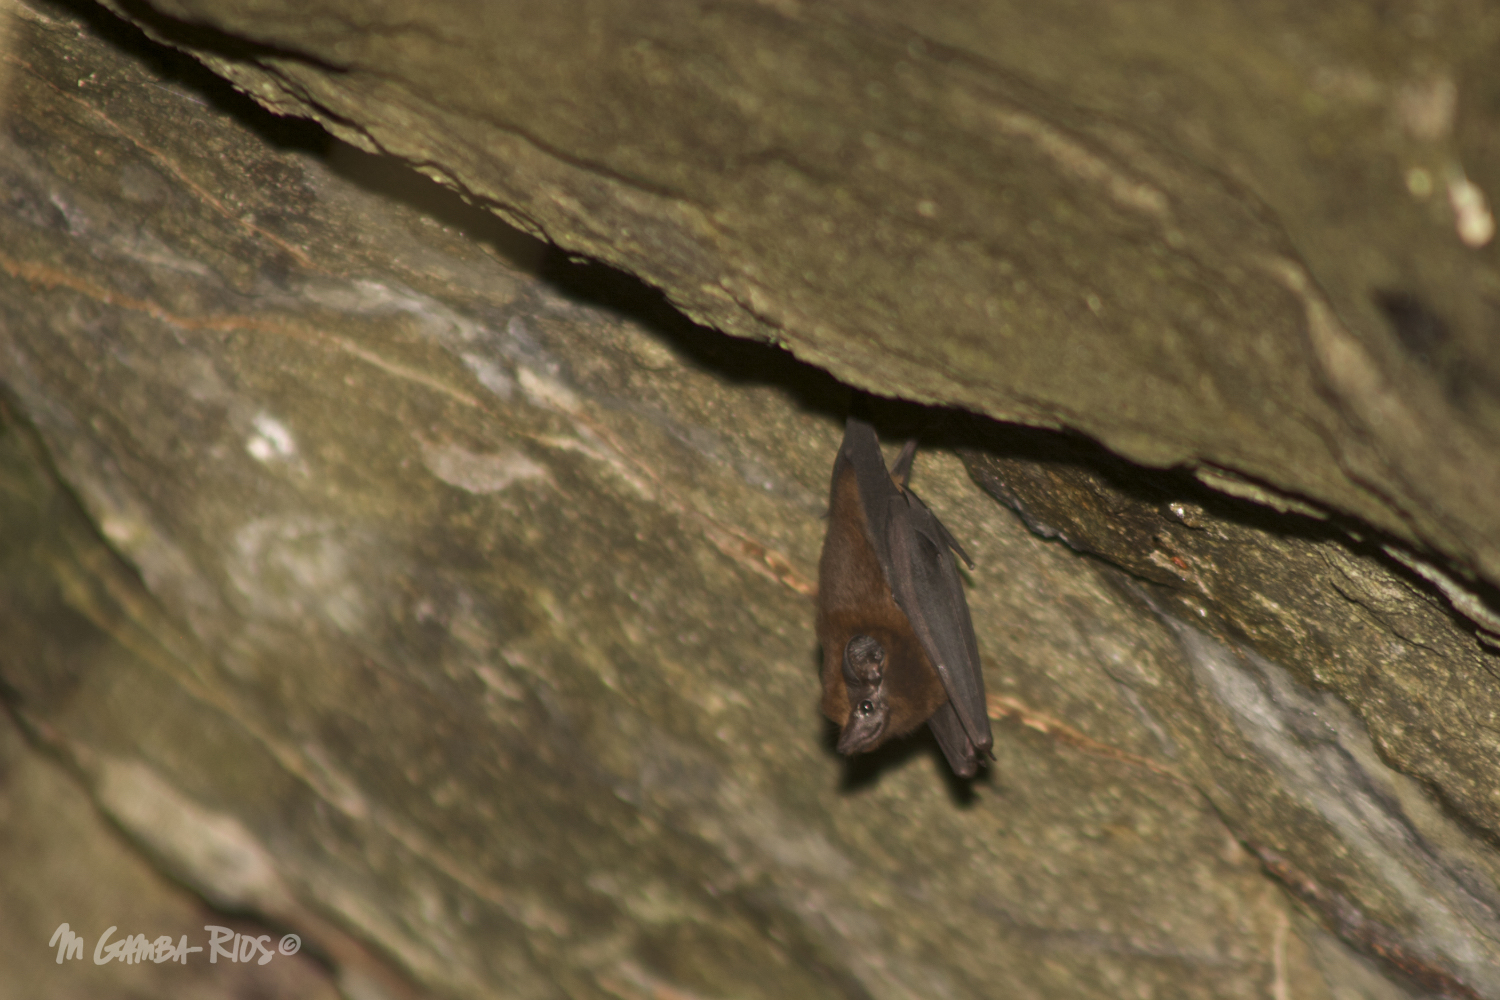 Greater dog-like bat (Peropteryx kappleri), roost in caves andboulder crevices